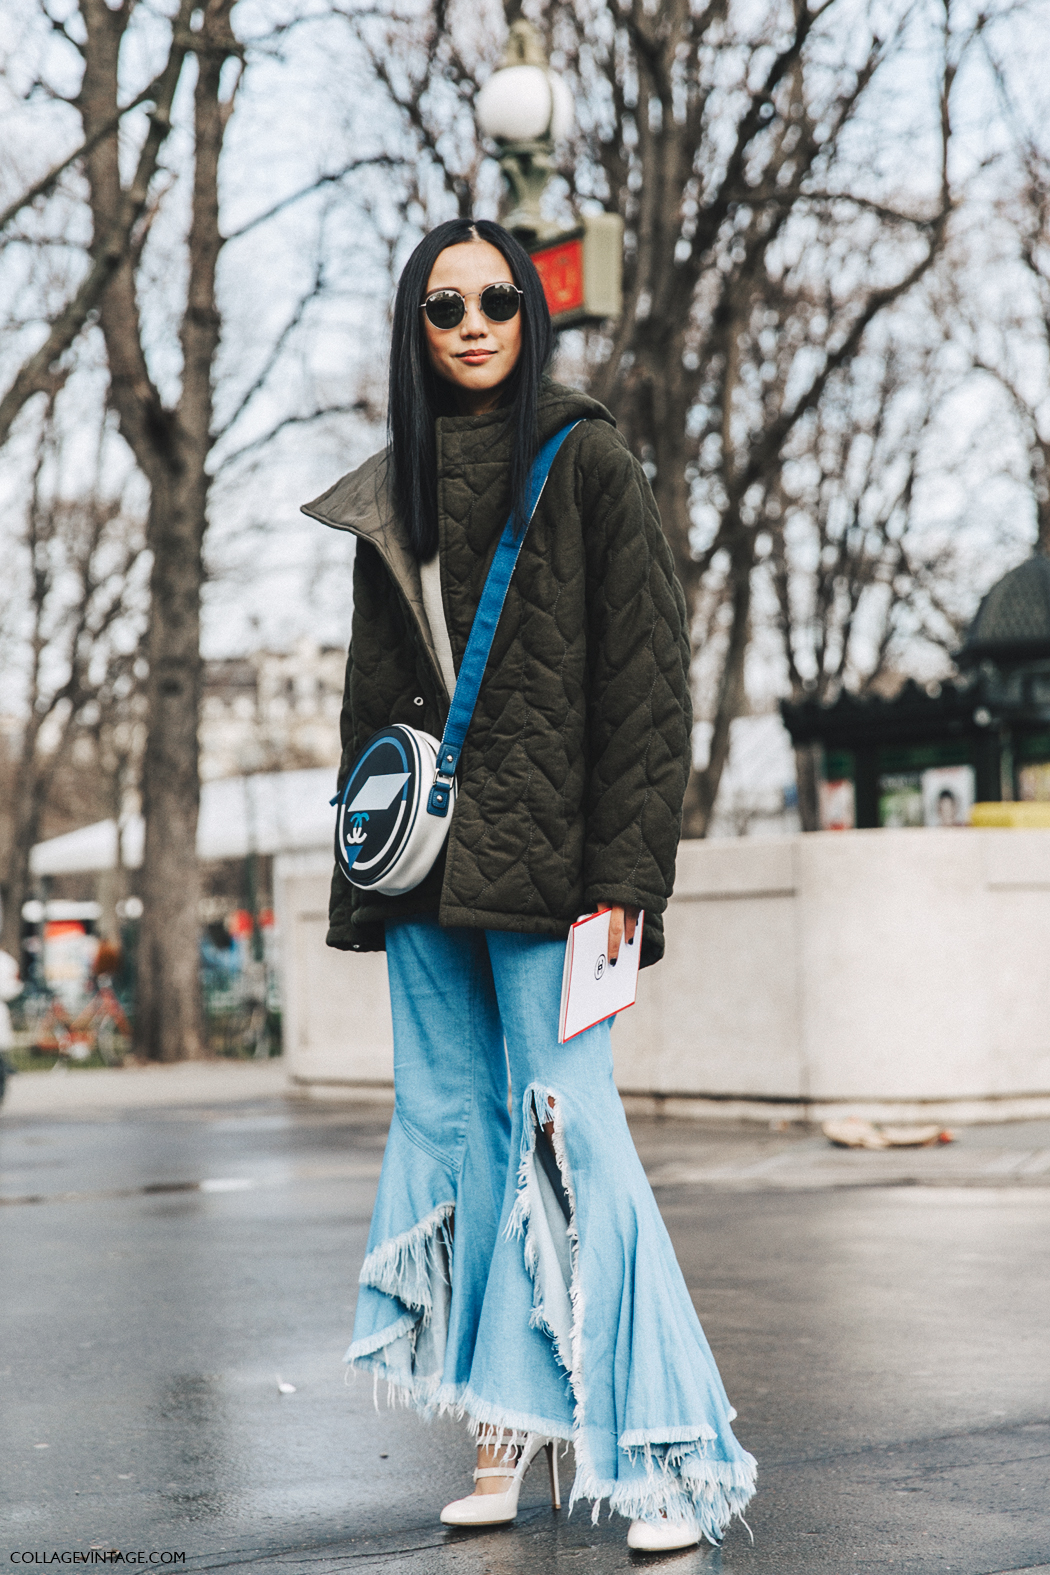 PFW-Paris_Fashion_Week_Fall_2016-Street_Style-Collage_Vintage-yoyo_Cao-Chanel_Bag-Ripped_Jeans-1